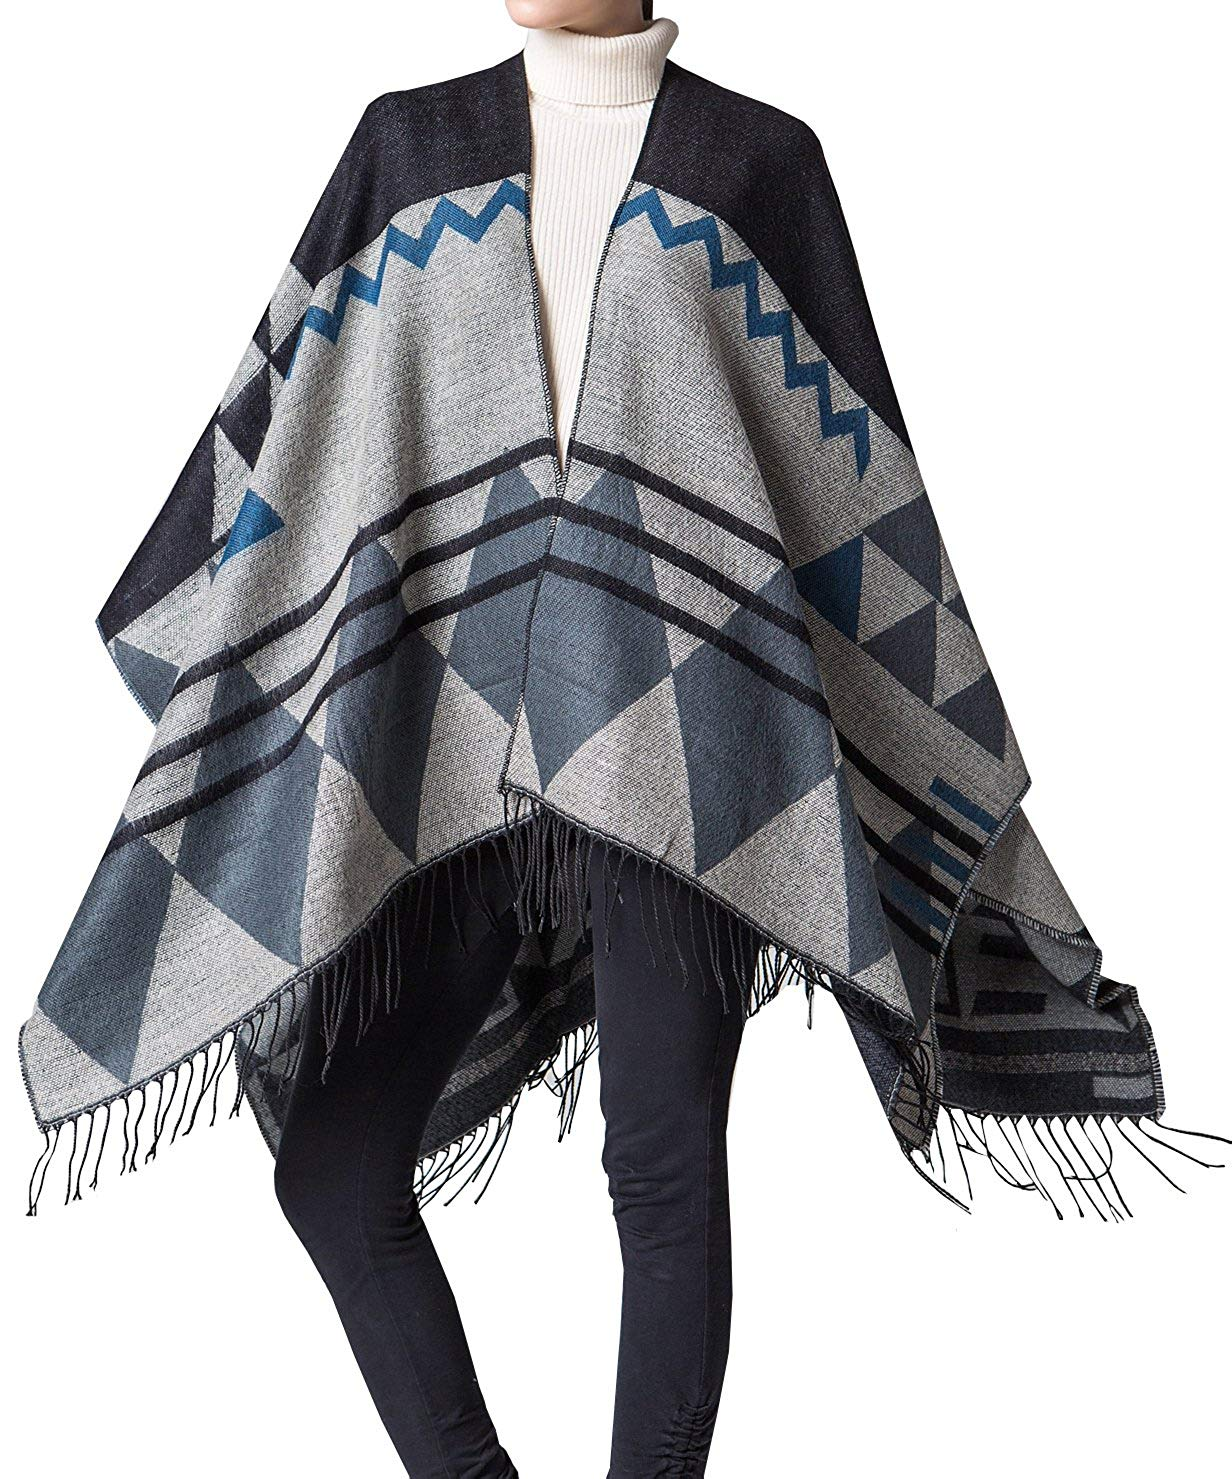 192323755 Get Quotations · Foucome Bohemian Tassel Cashmere Poncho Capes Women's  Winter Warm Ethnic Scarves Shawls Female Longer Scarf Pashmina